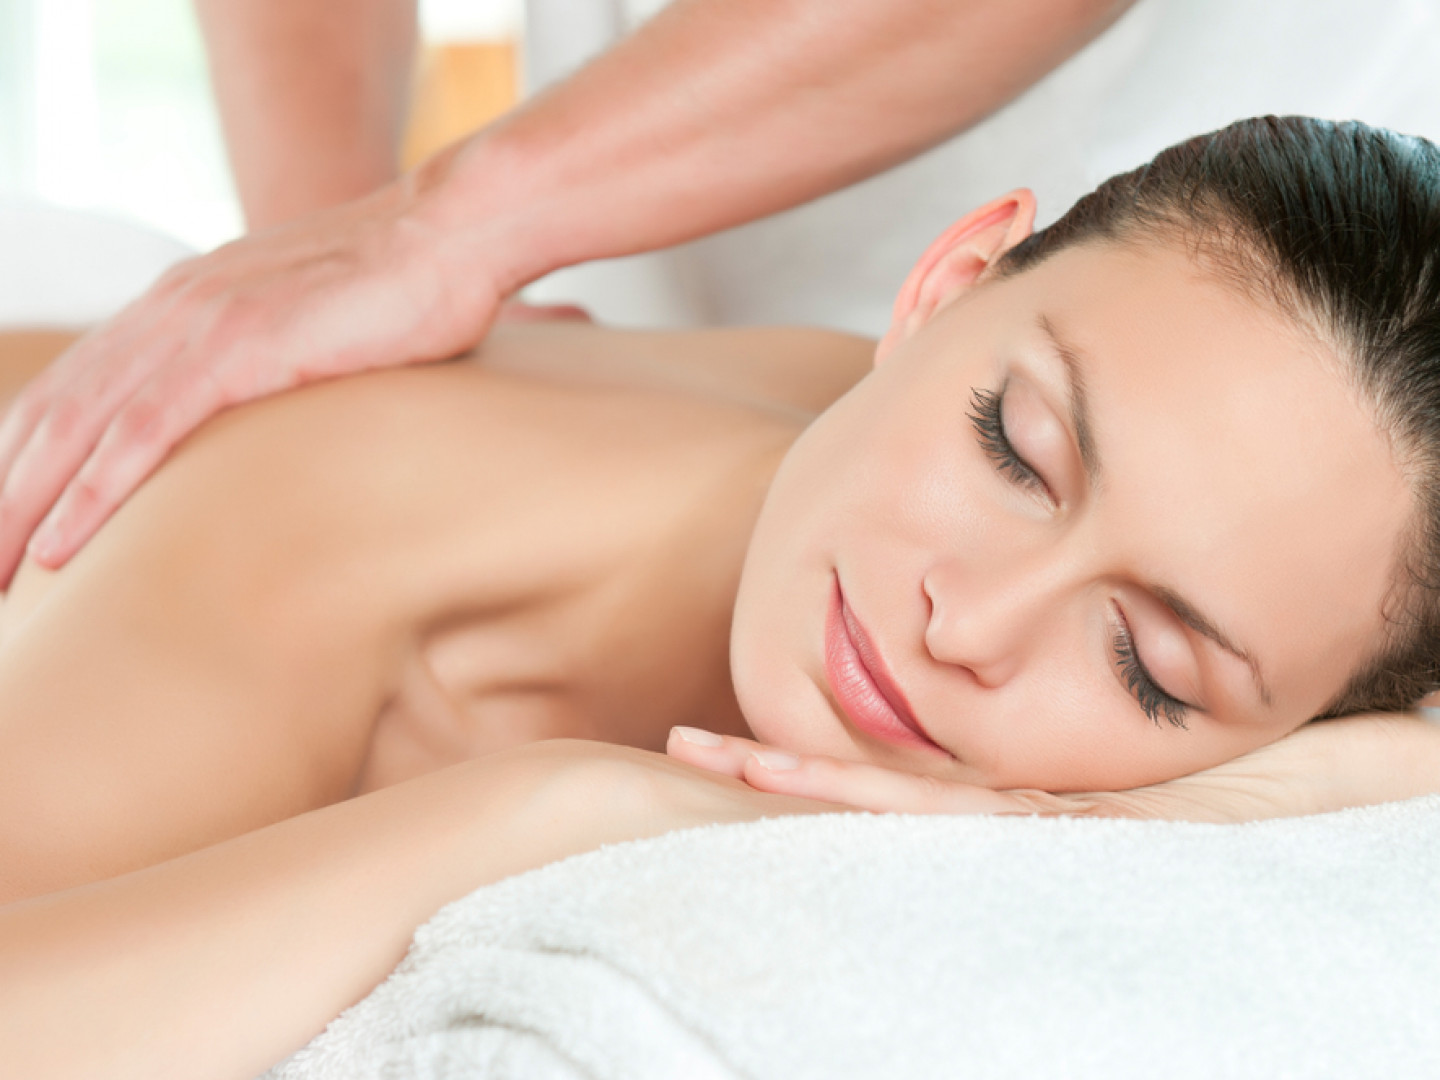 Choose a well-qualified massage therapist